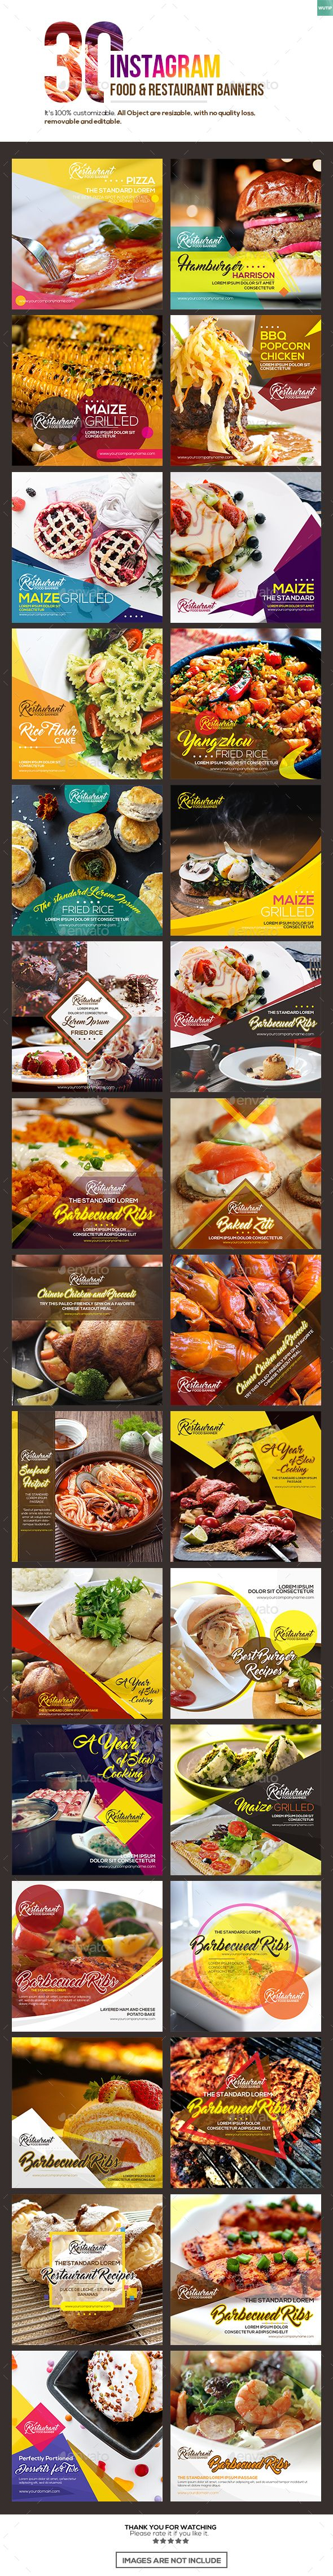 30 Instagram Food & Restaurant Banner Templates PSD